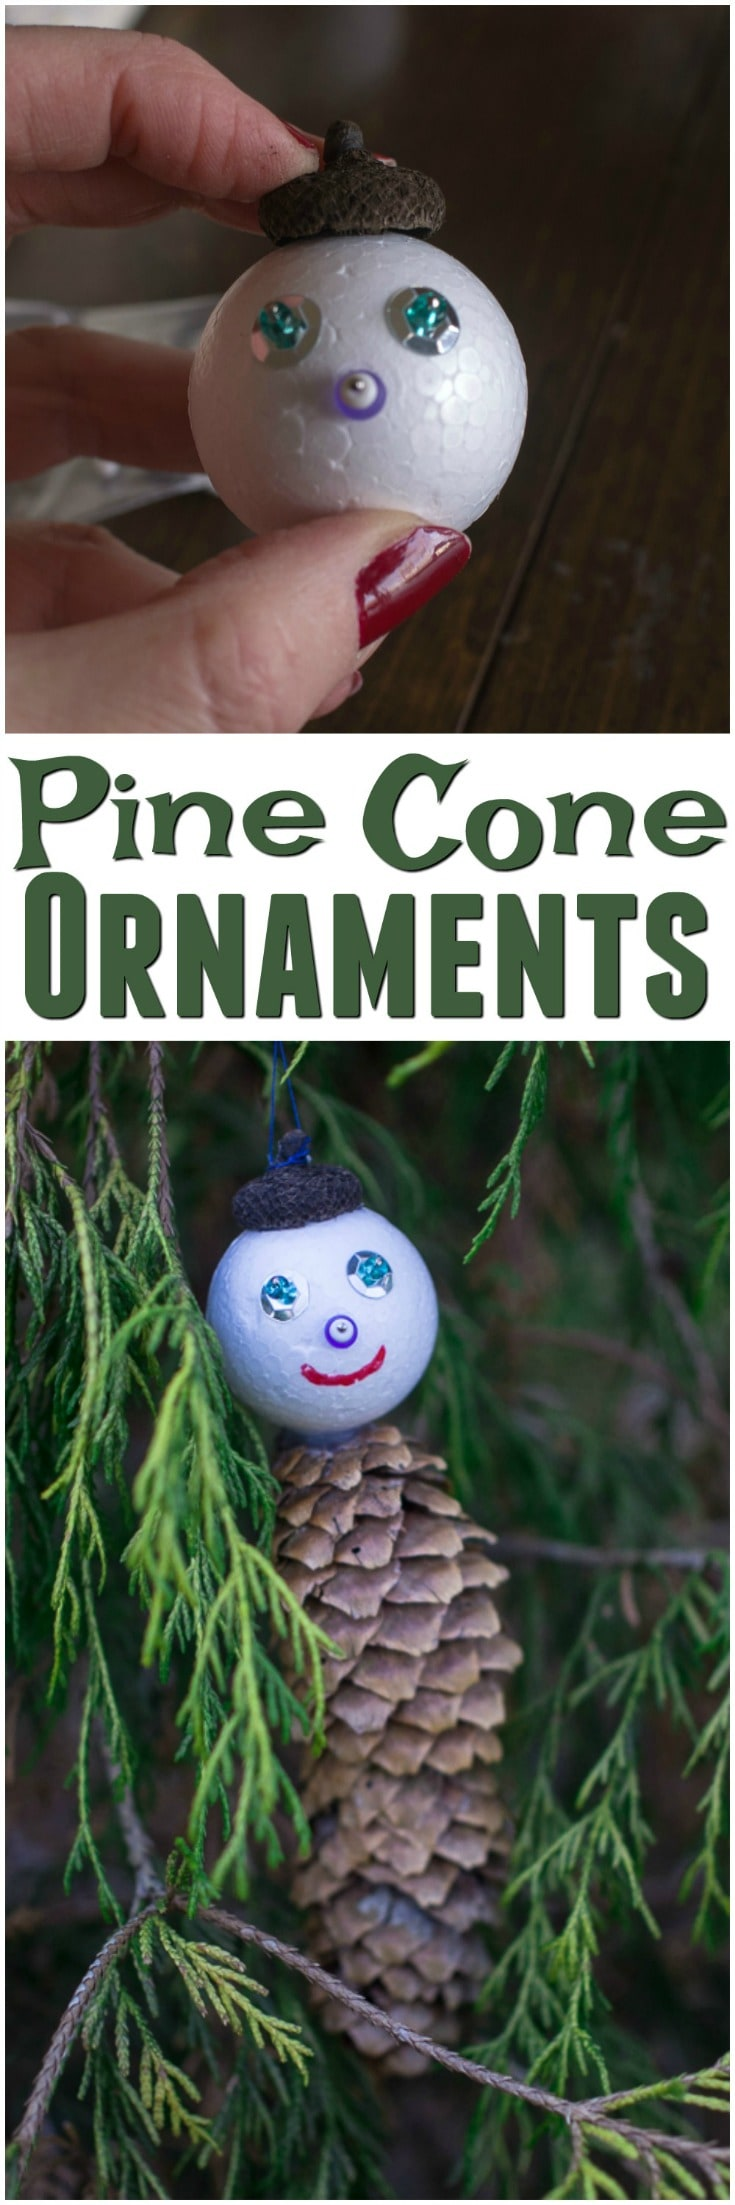 Pine Cone Ornaments | DIY Christmas Ornaments | Acorn Cap Crafts | Pine Cone Men | Pinecone DIY | Creative Xmas Decorations | easy kids crafts